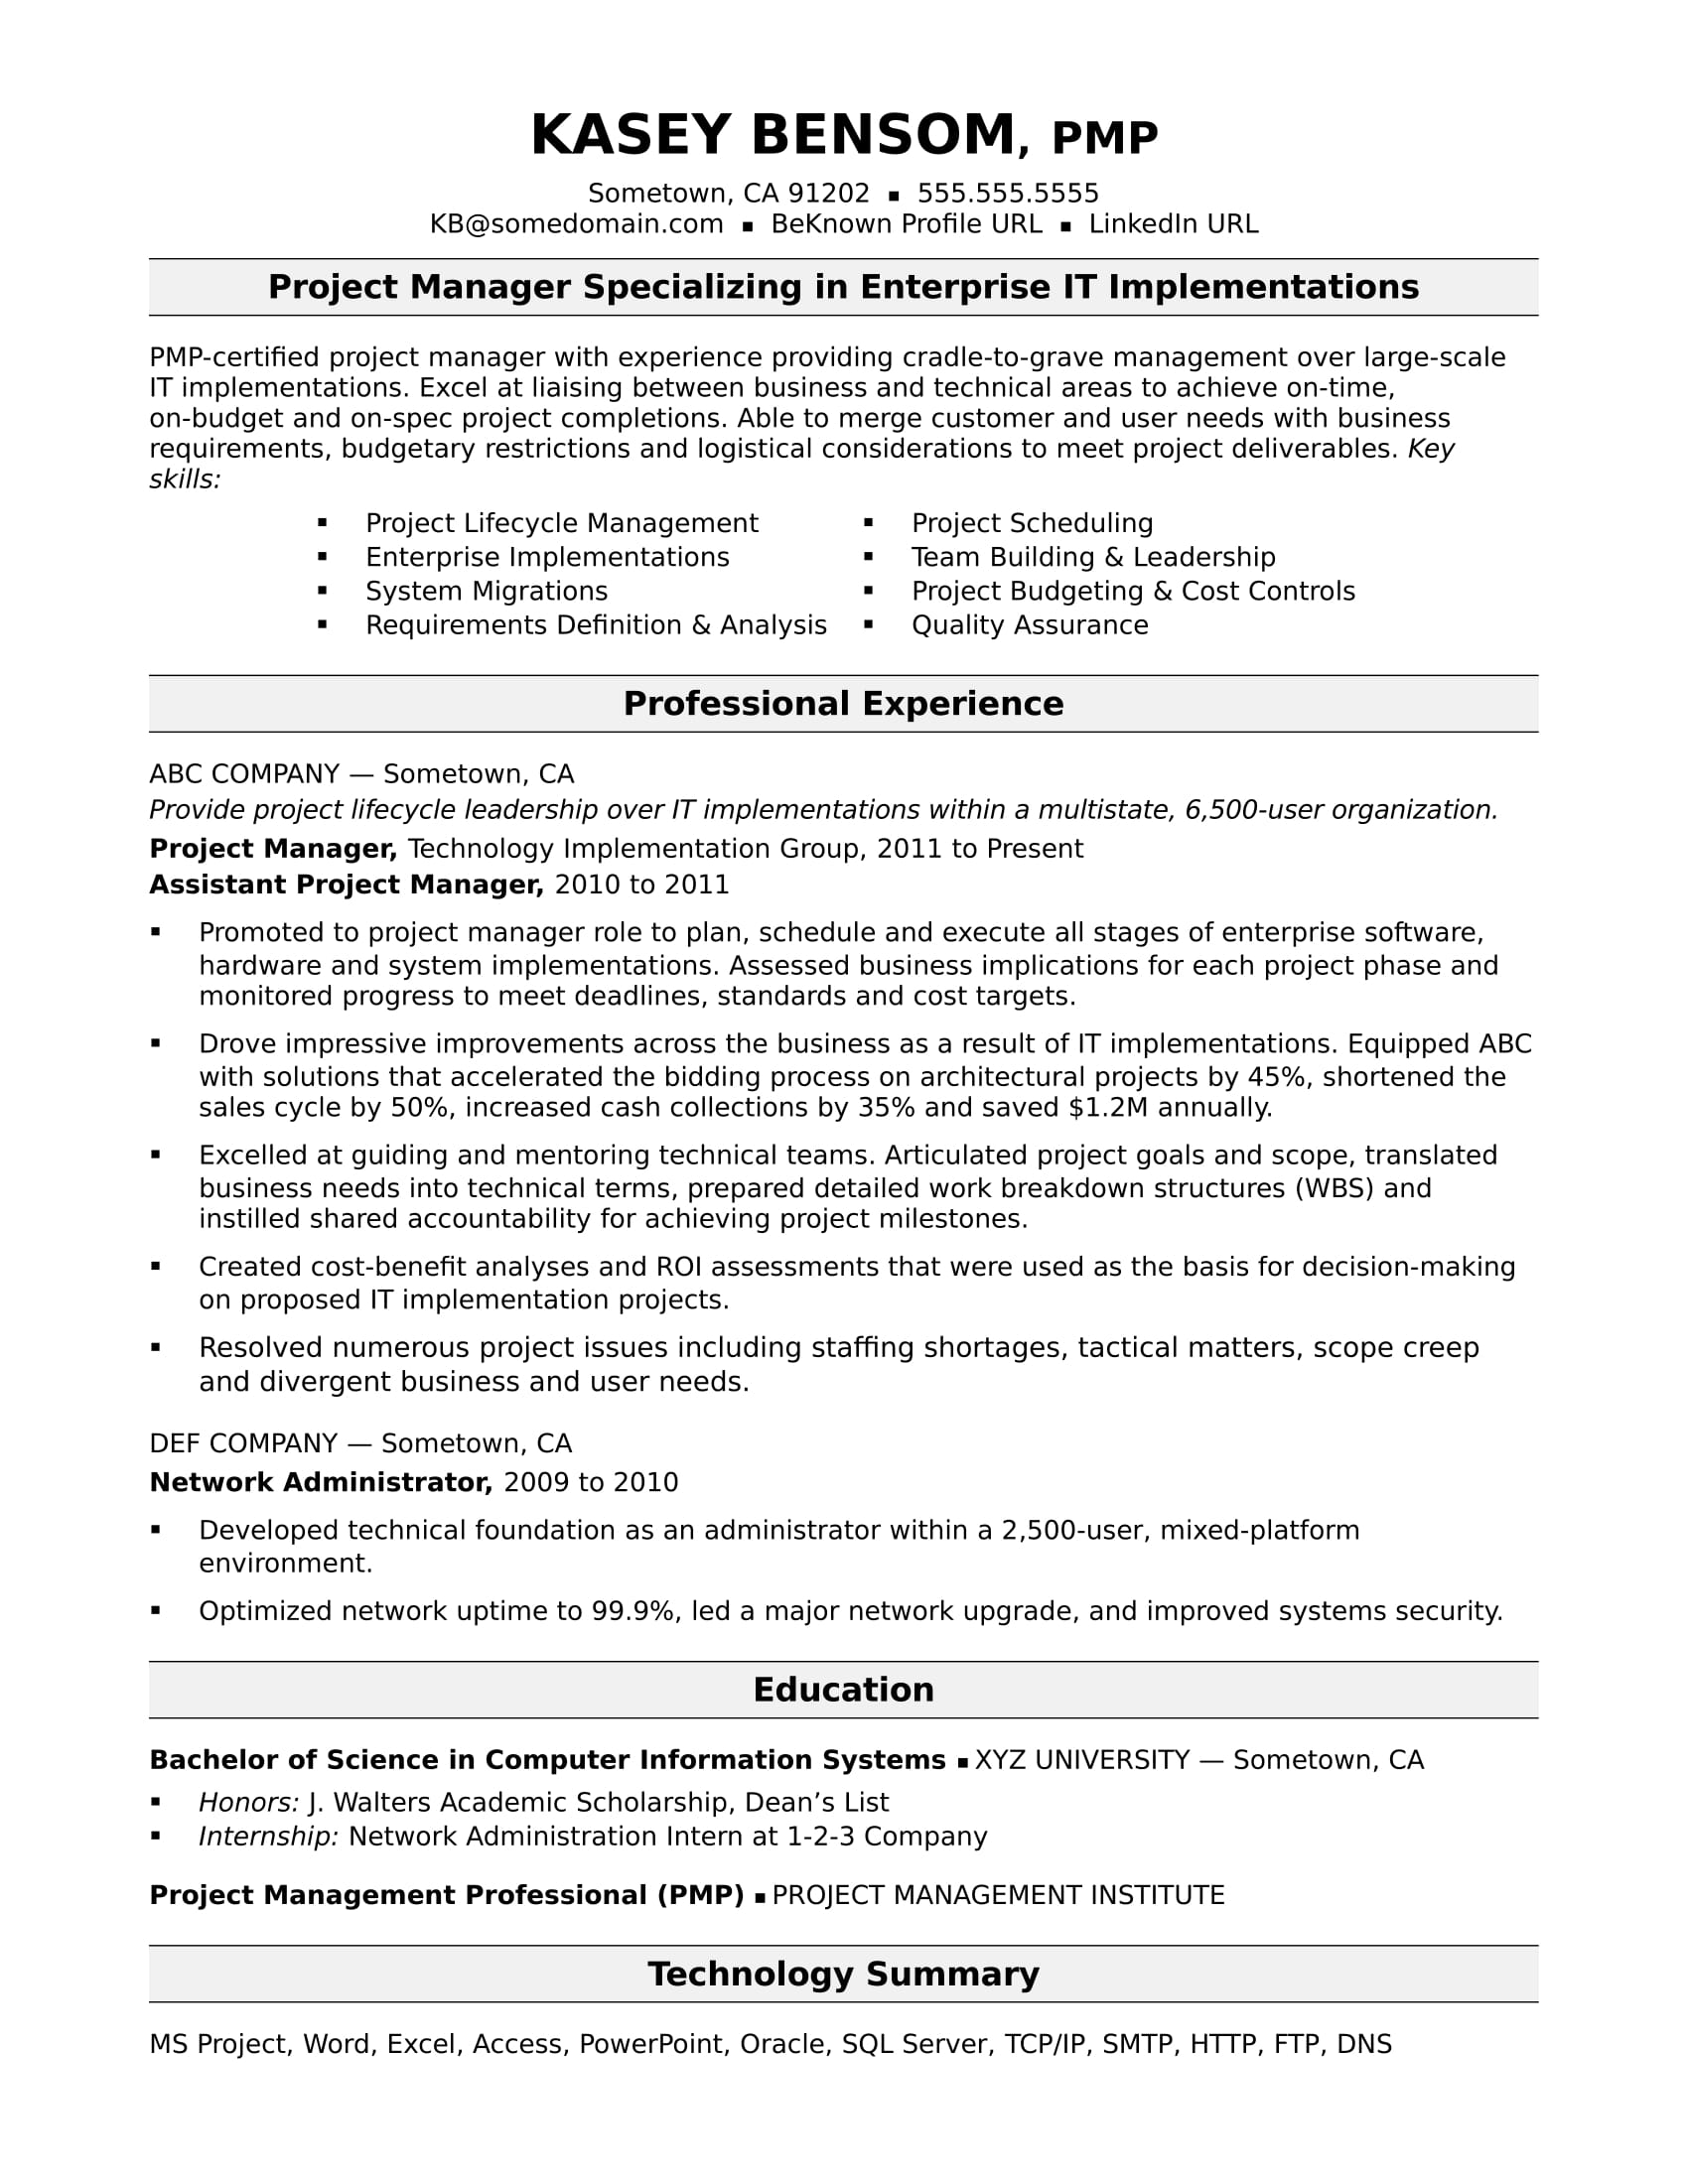 sample resume for midlevel it project manager monster management buzzwords warehouse Resume Project Management Buzzwords For Resume